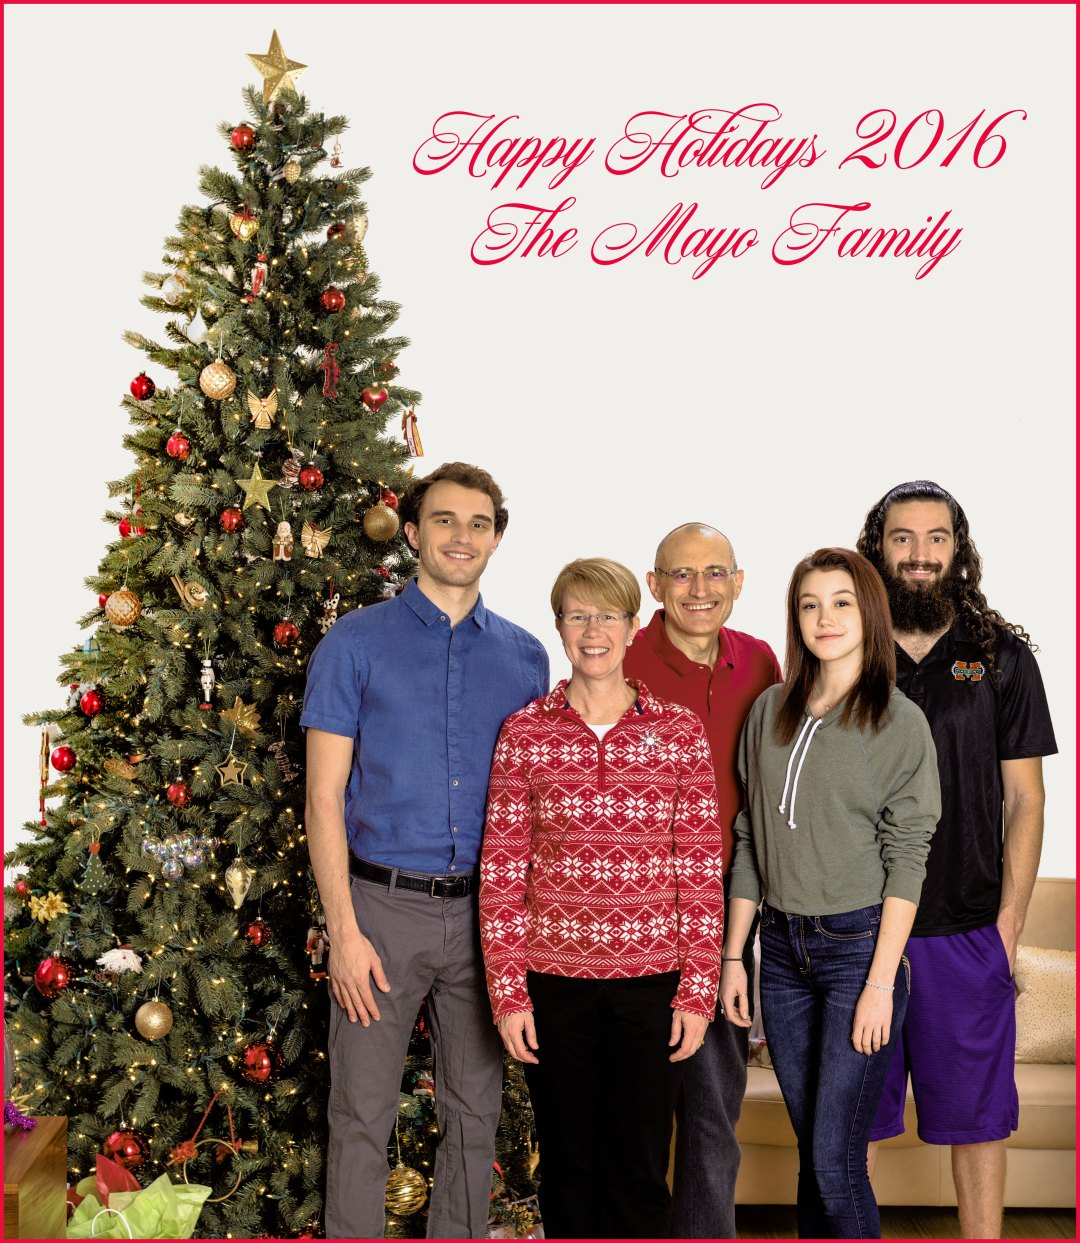 xmas-2016-family-portraits-4252-pccomplete-psedit